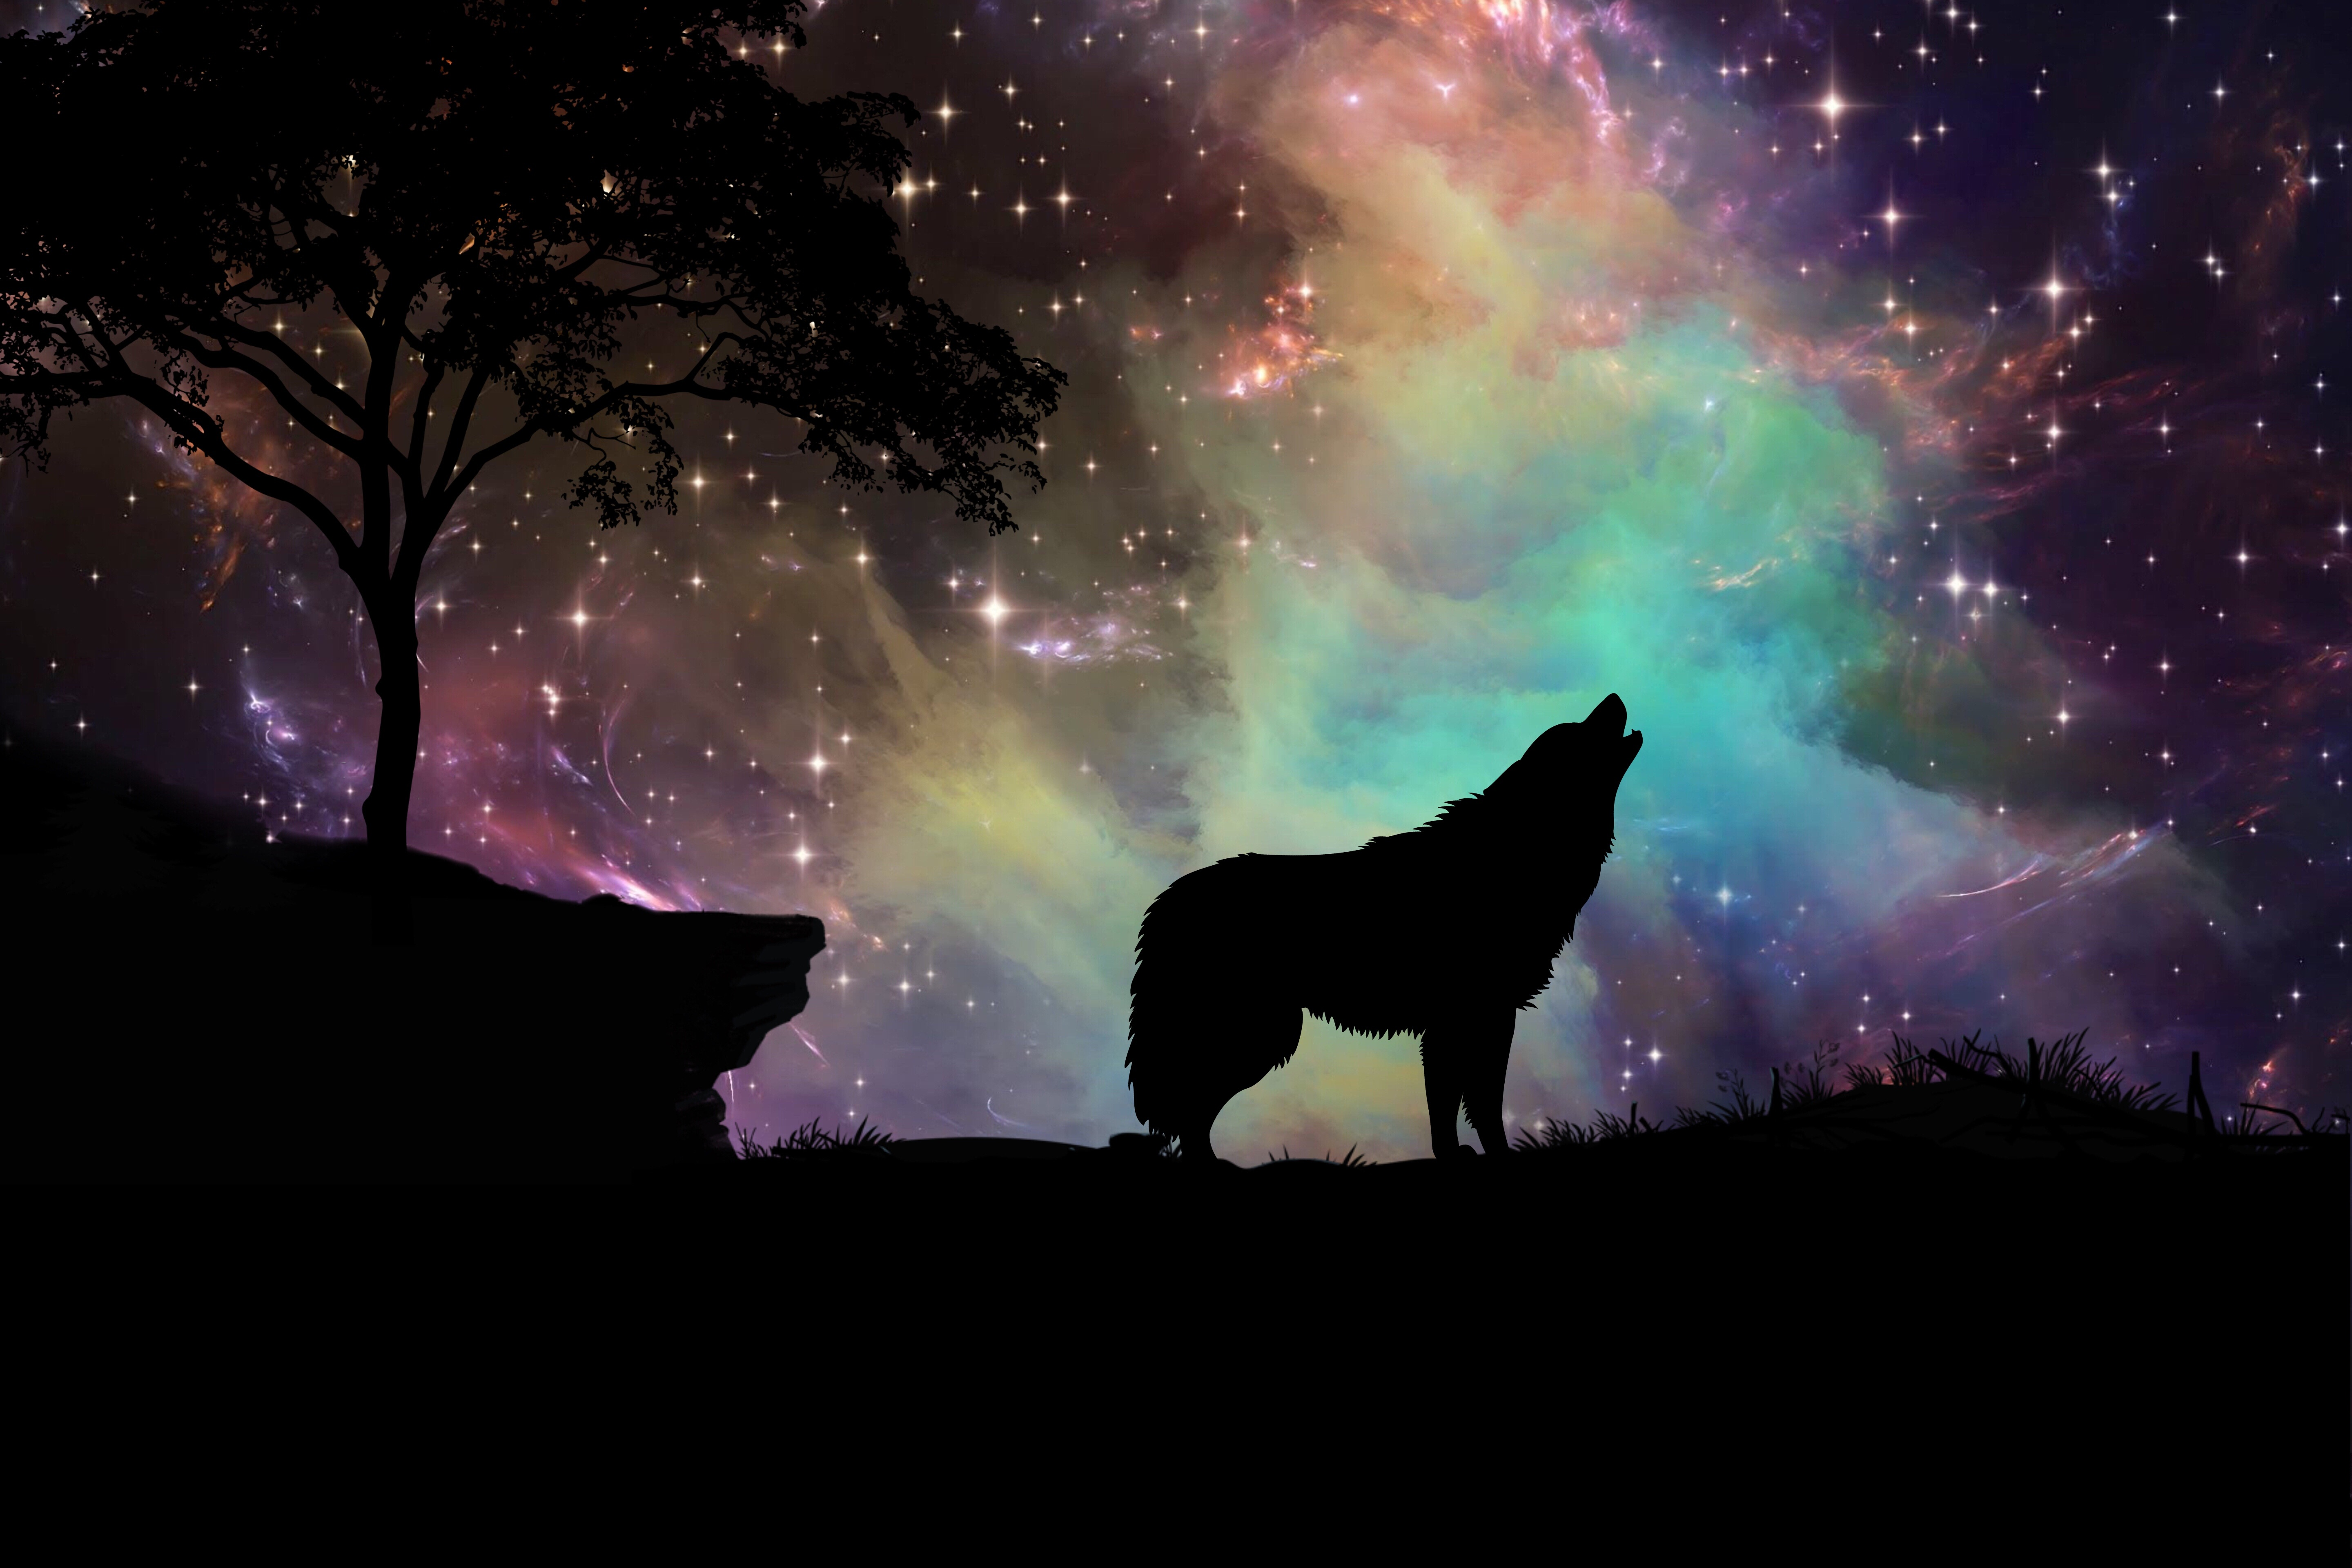 62032 download wallpaper Dark, Wolf, Starry Sky, Silhouette, Art screensavers and pictures for free